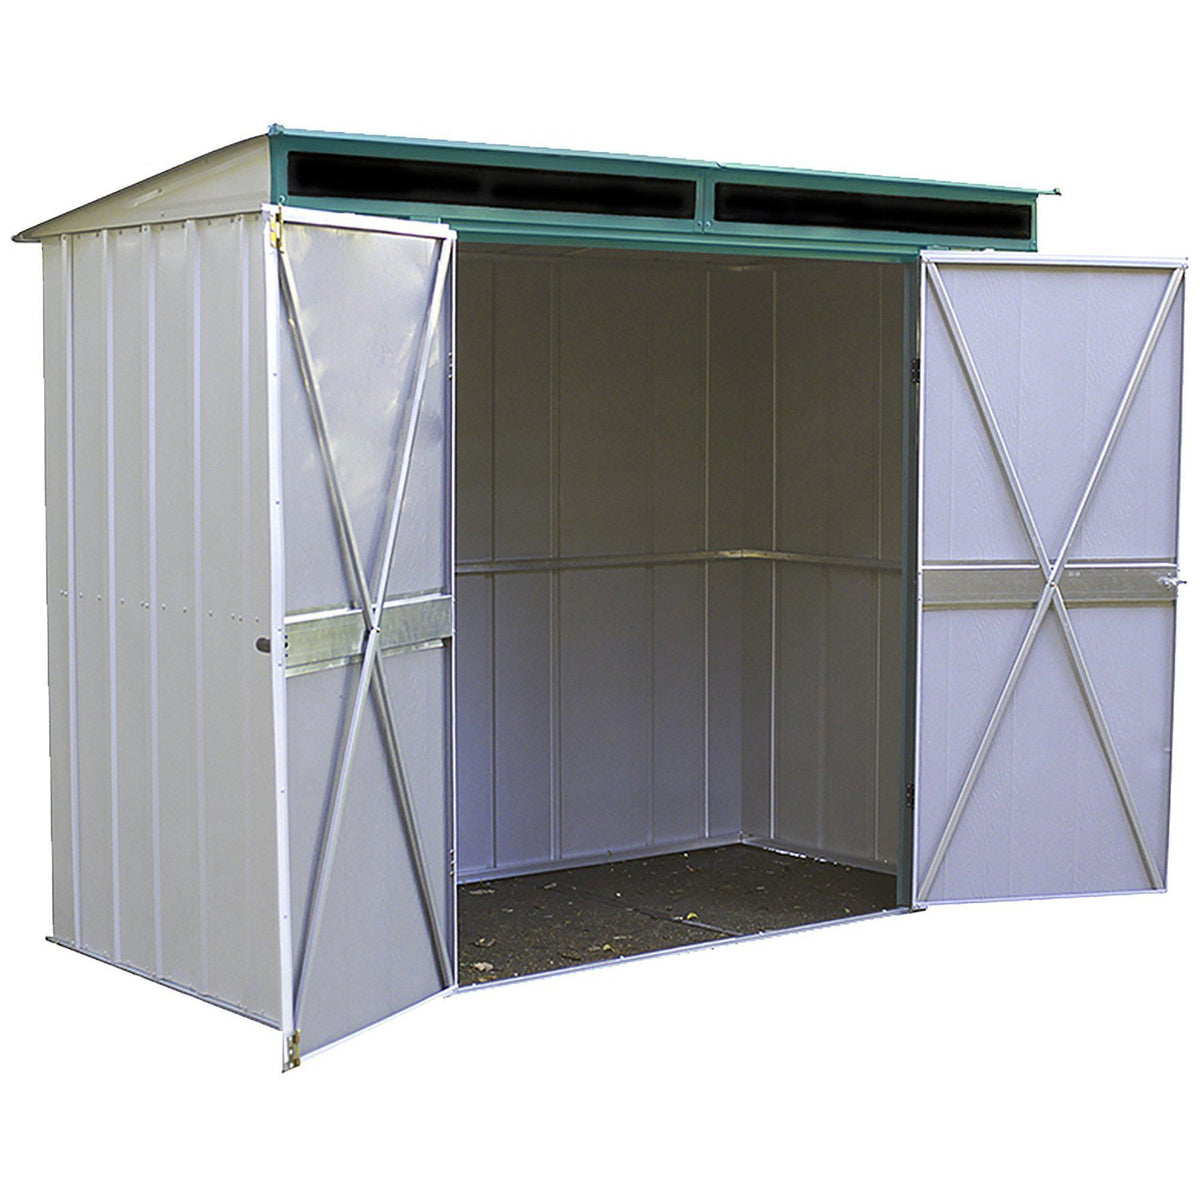 Arrow Euro-Lite Steel Storage Pent Shed, Green/Eggshell, 8 x 4 ft.